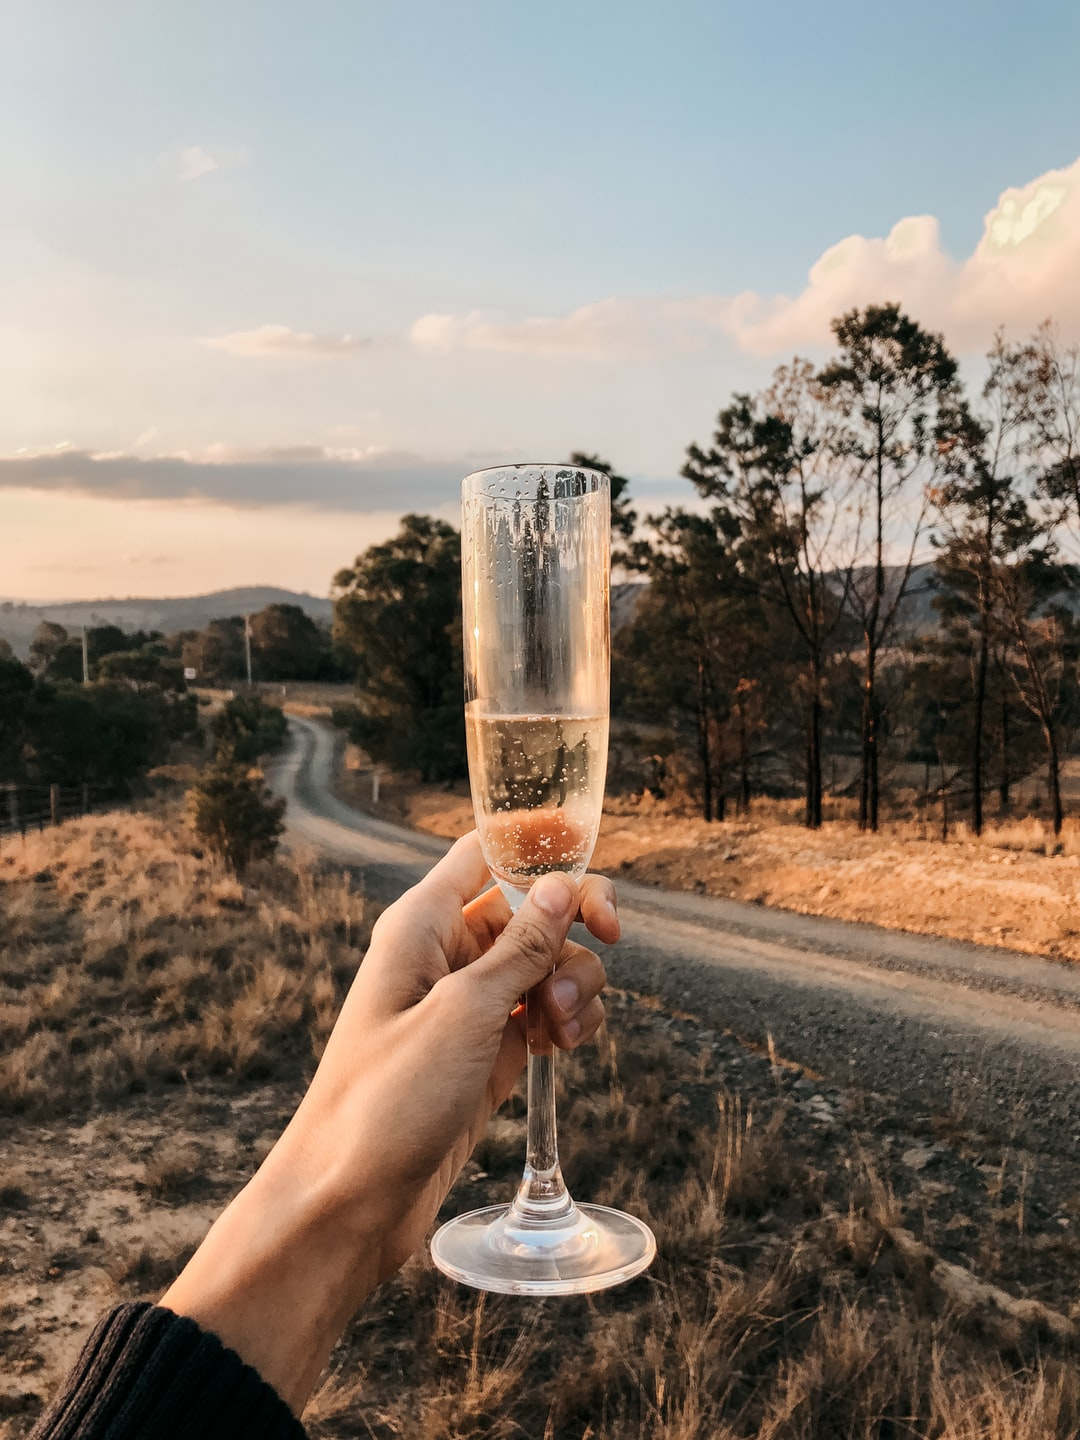 Celebrating a friend's birthday with champagne in a beautiful and rural part of NSW, Australia.